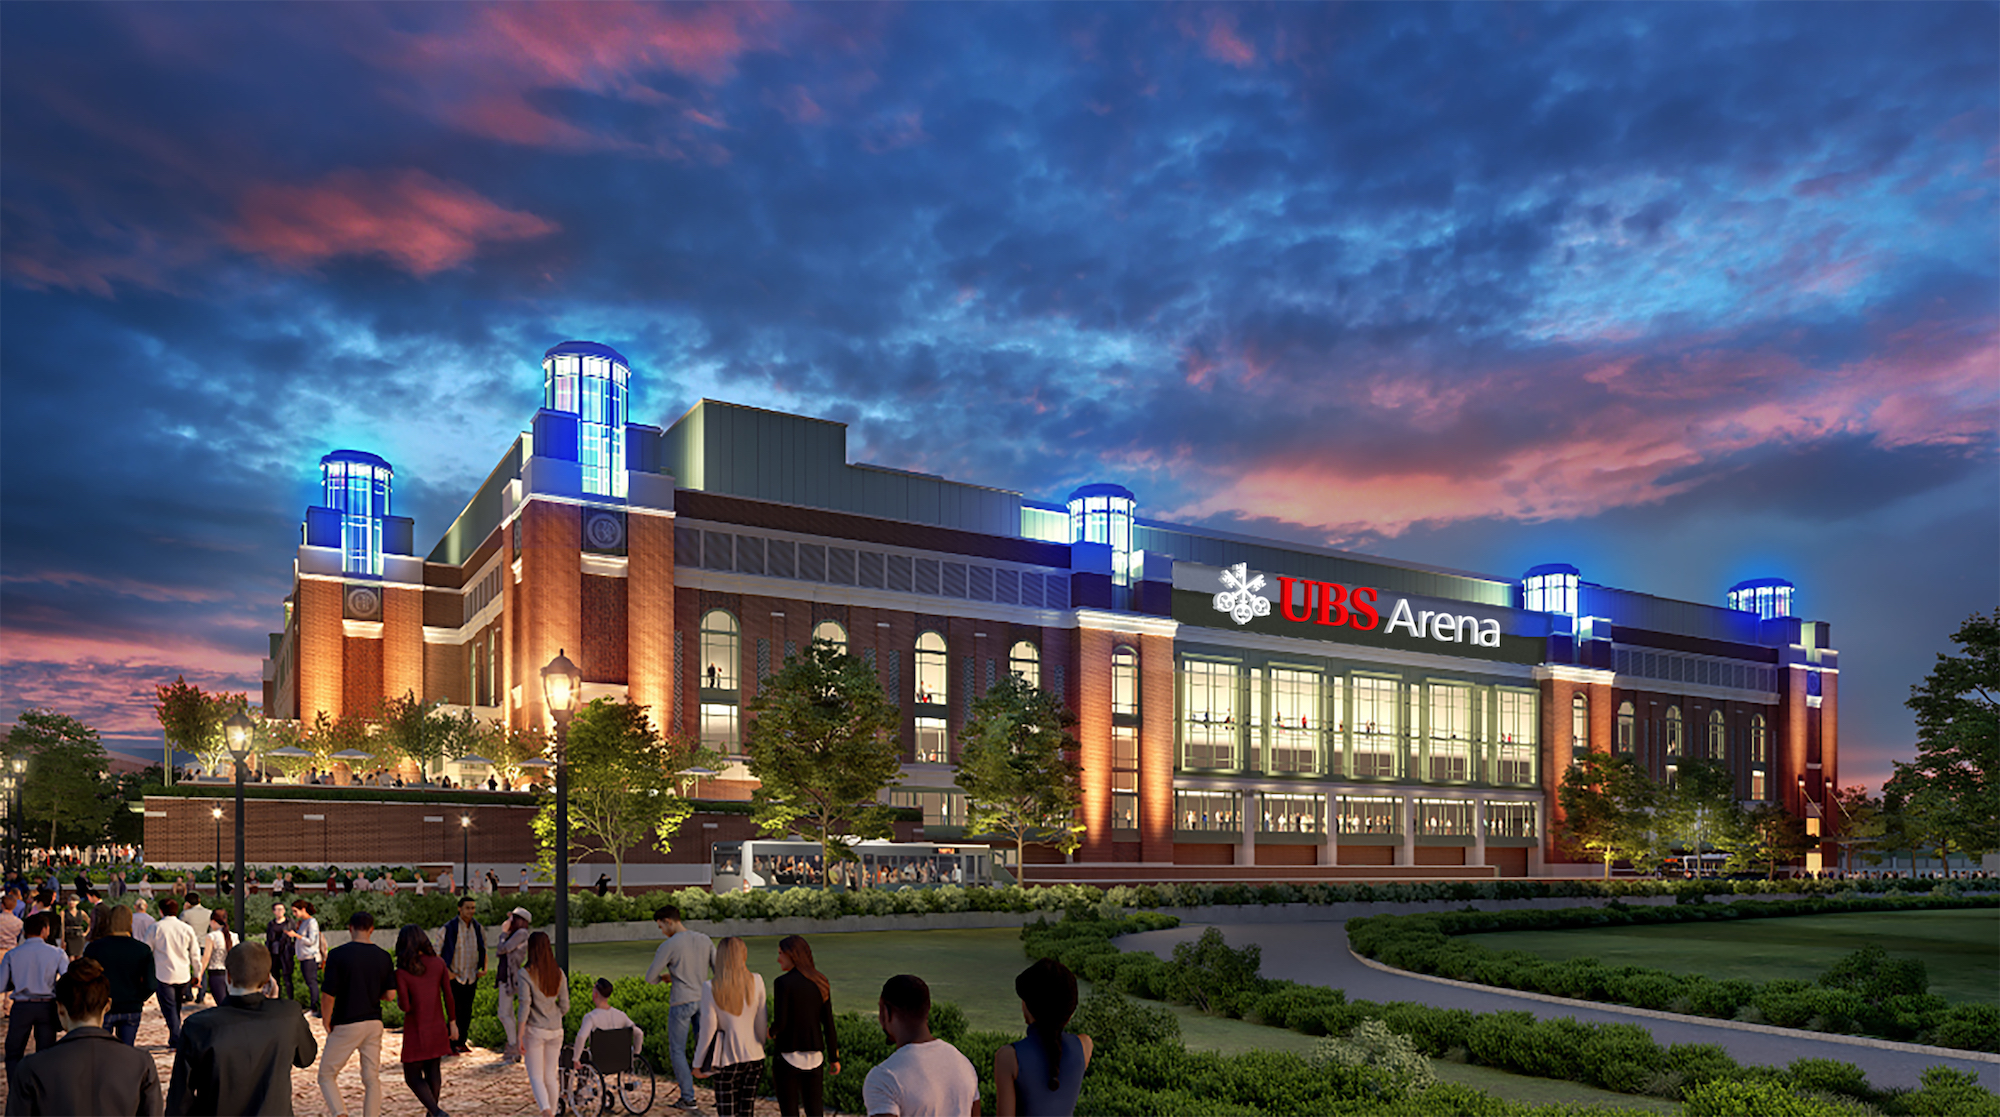 New Looks And Name For Islanders Home Venue Ubs Arena At Belmont Park 6sqft